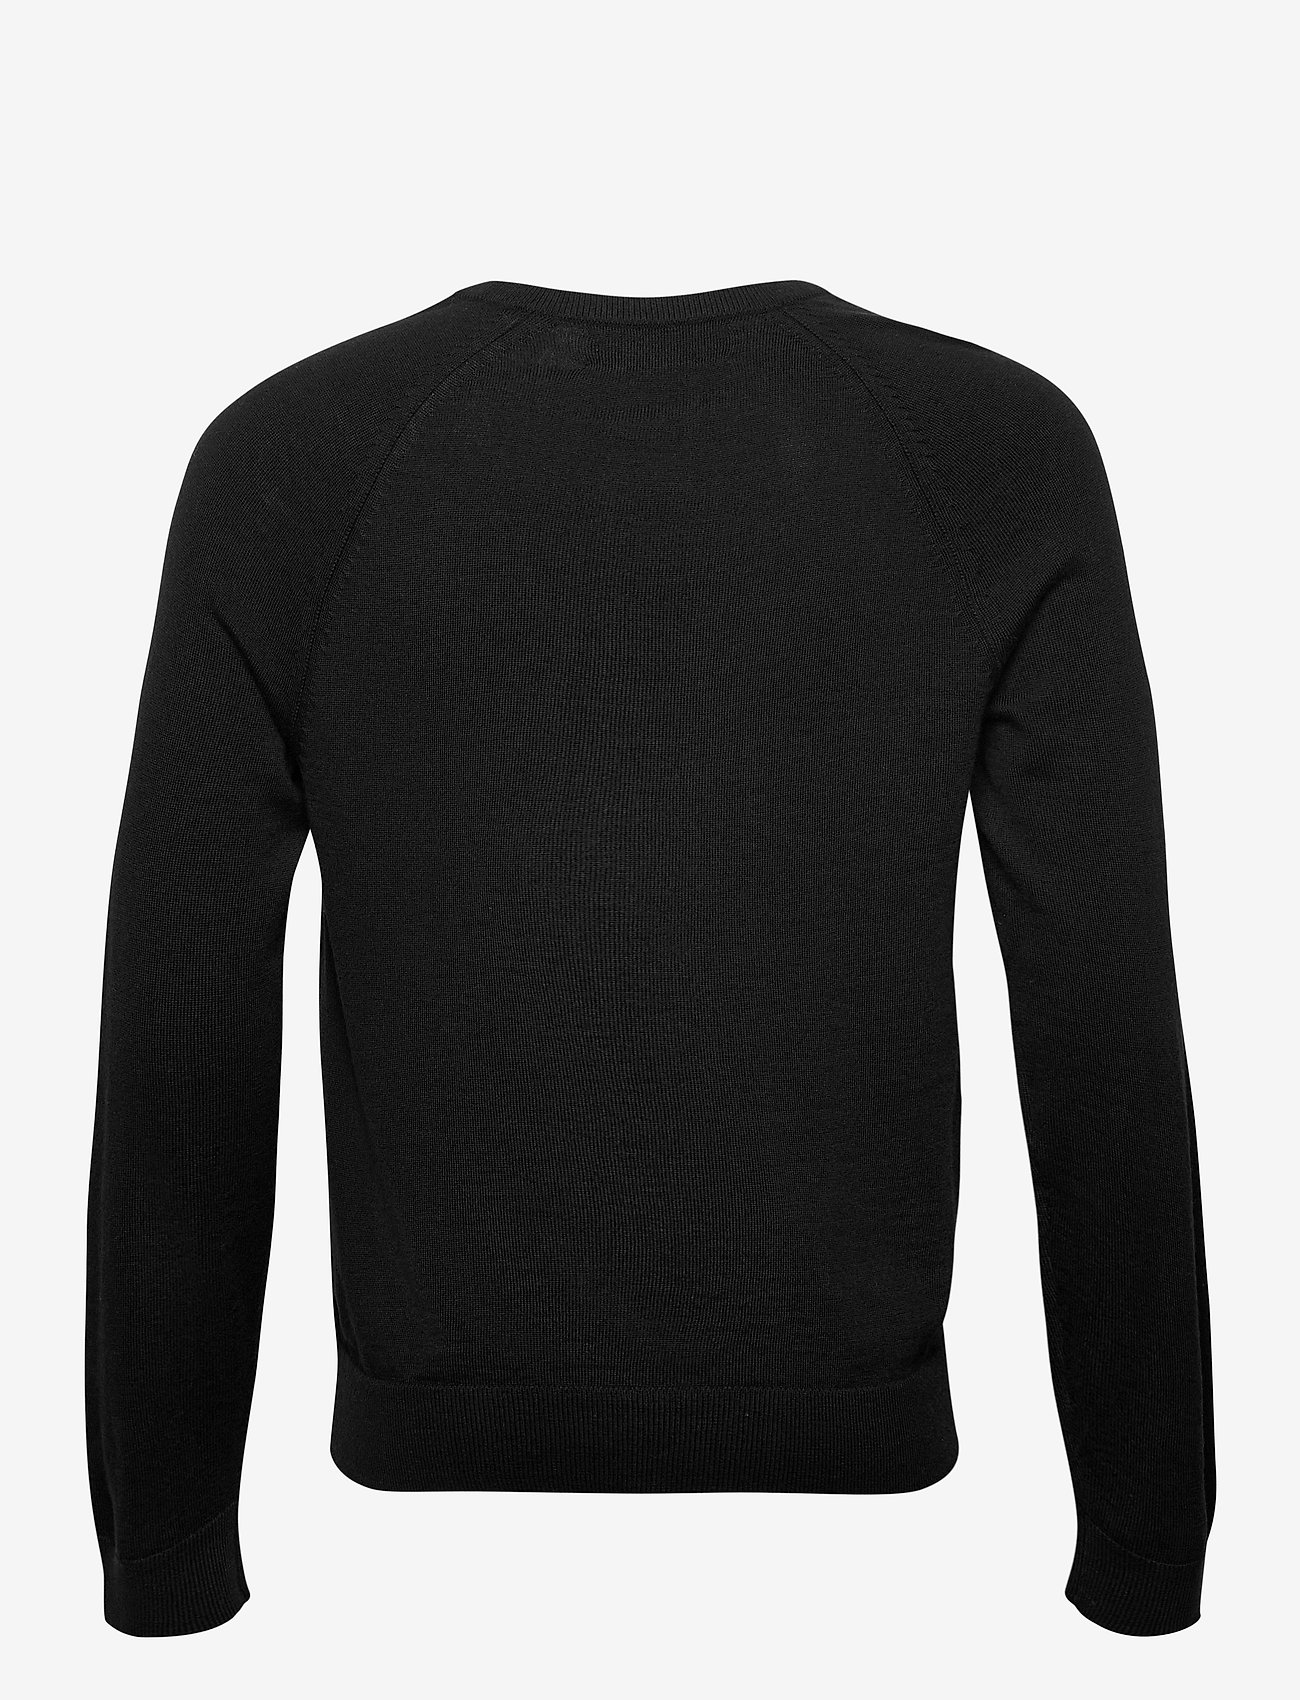 Banana Republic - Italian Merino Crew-Neck Sweater - basic knitwear - black - 1